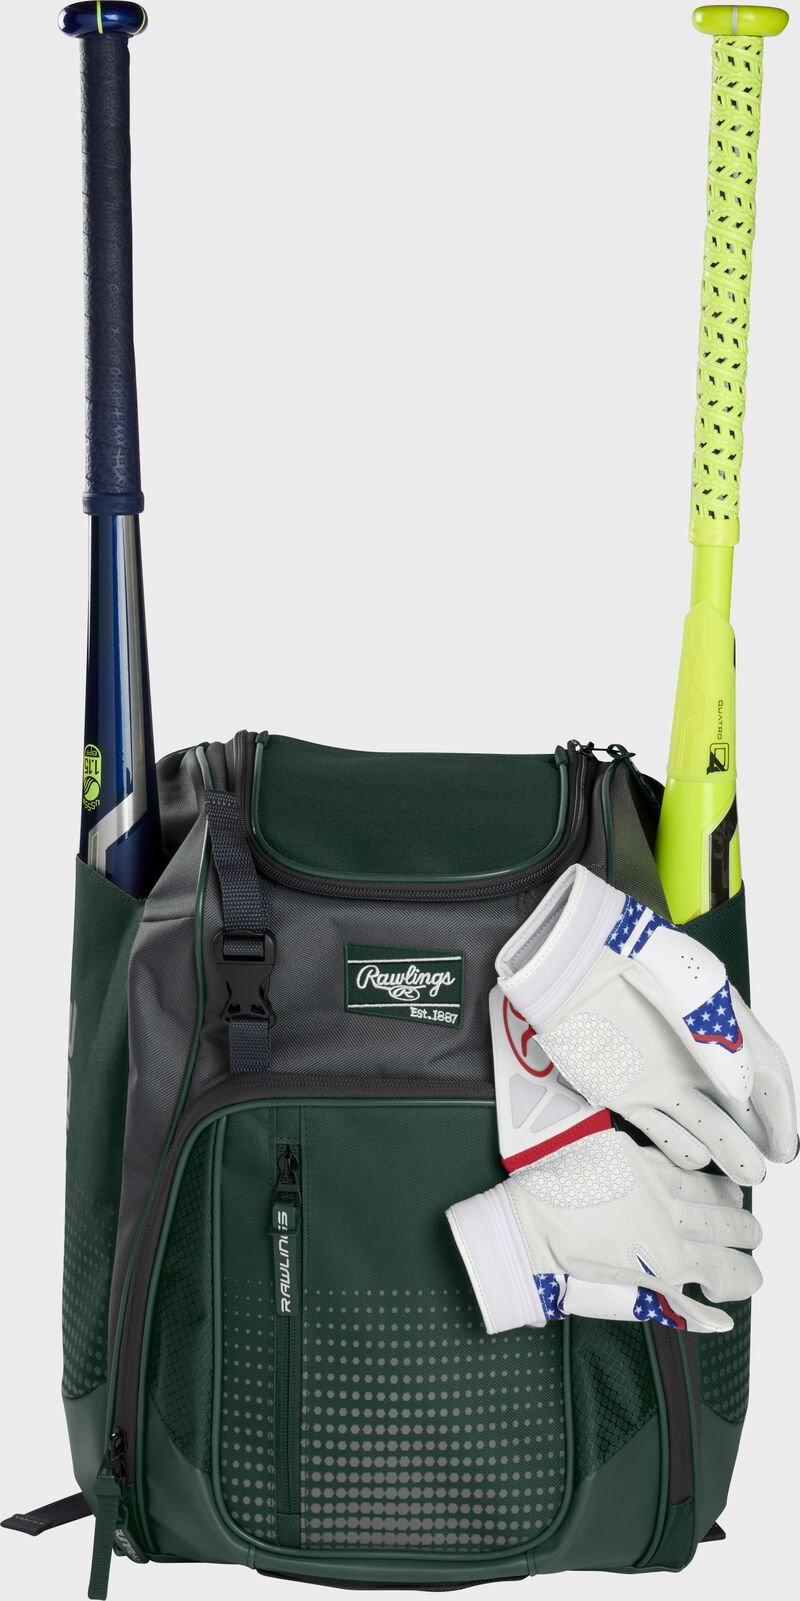 A dark green Franchise backpack with two bats in the sides and batting gloves on the front Velcro strap - SKU: FRANBP-DG